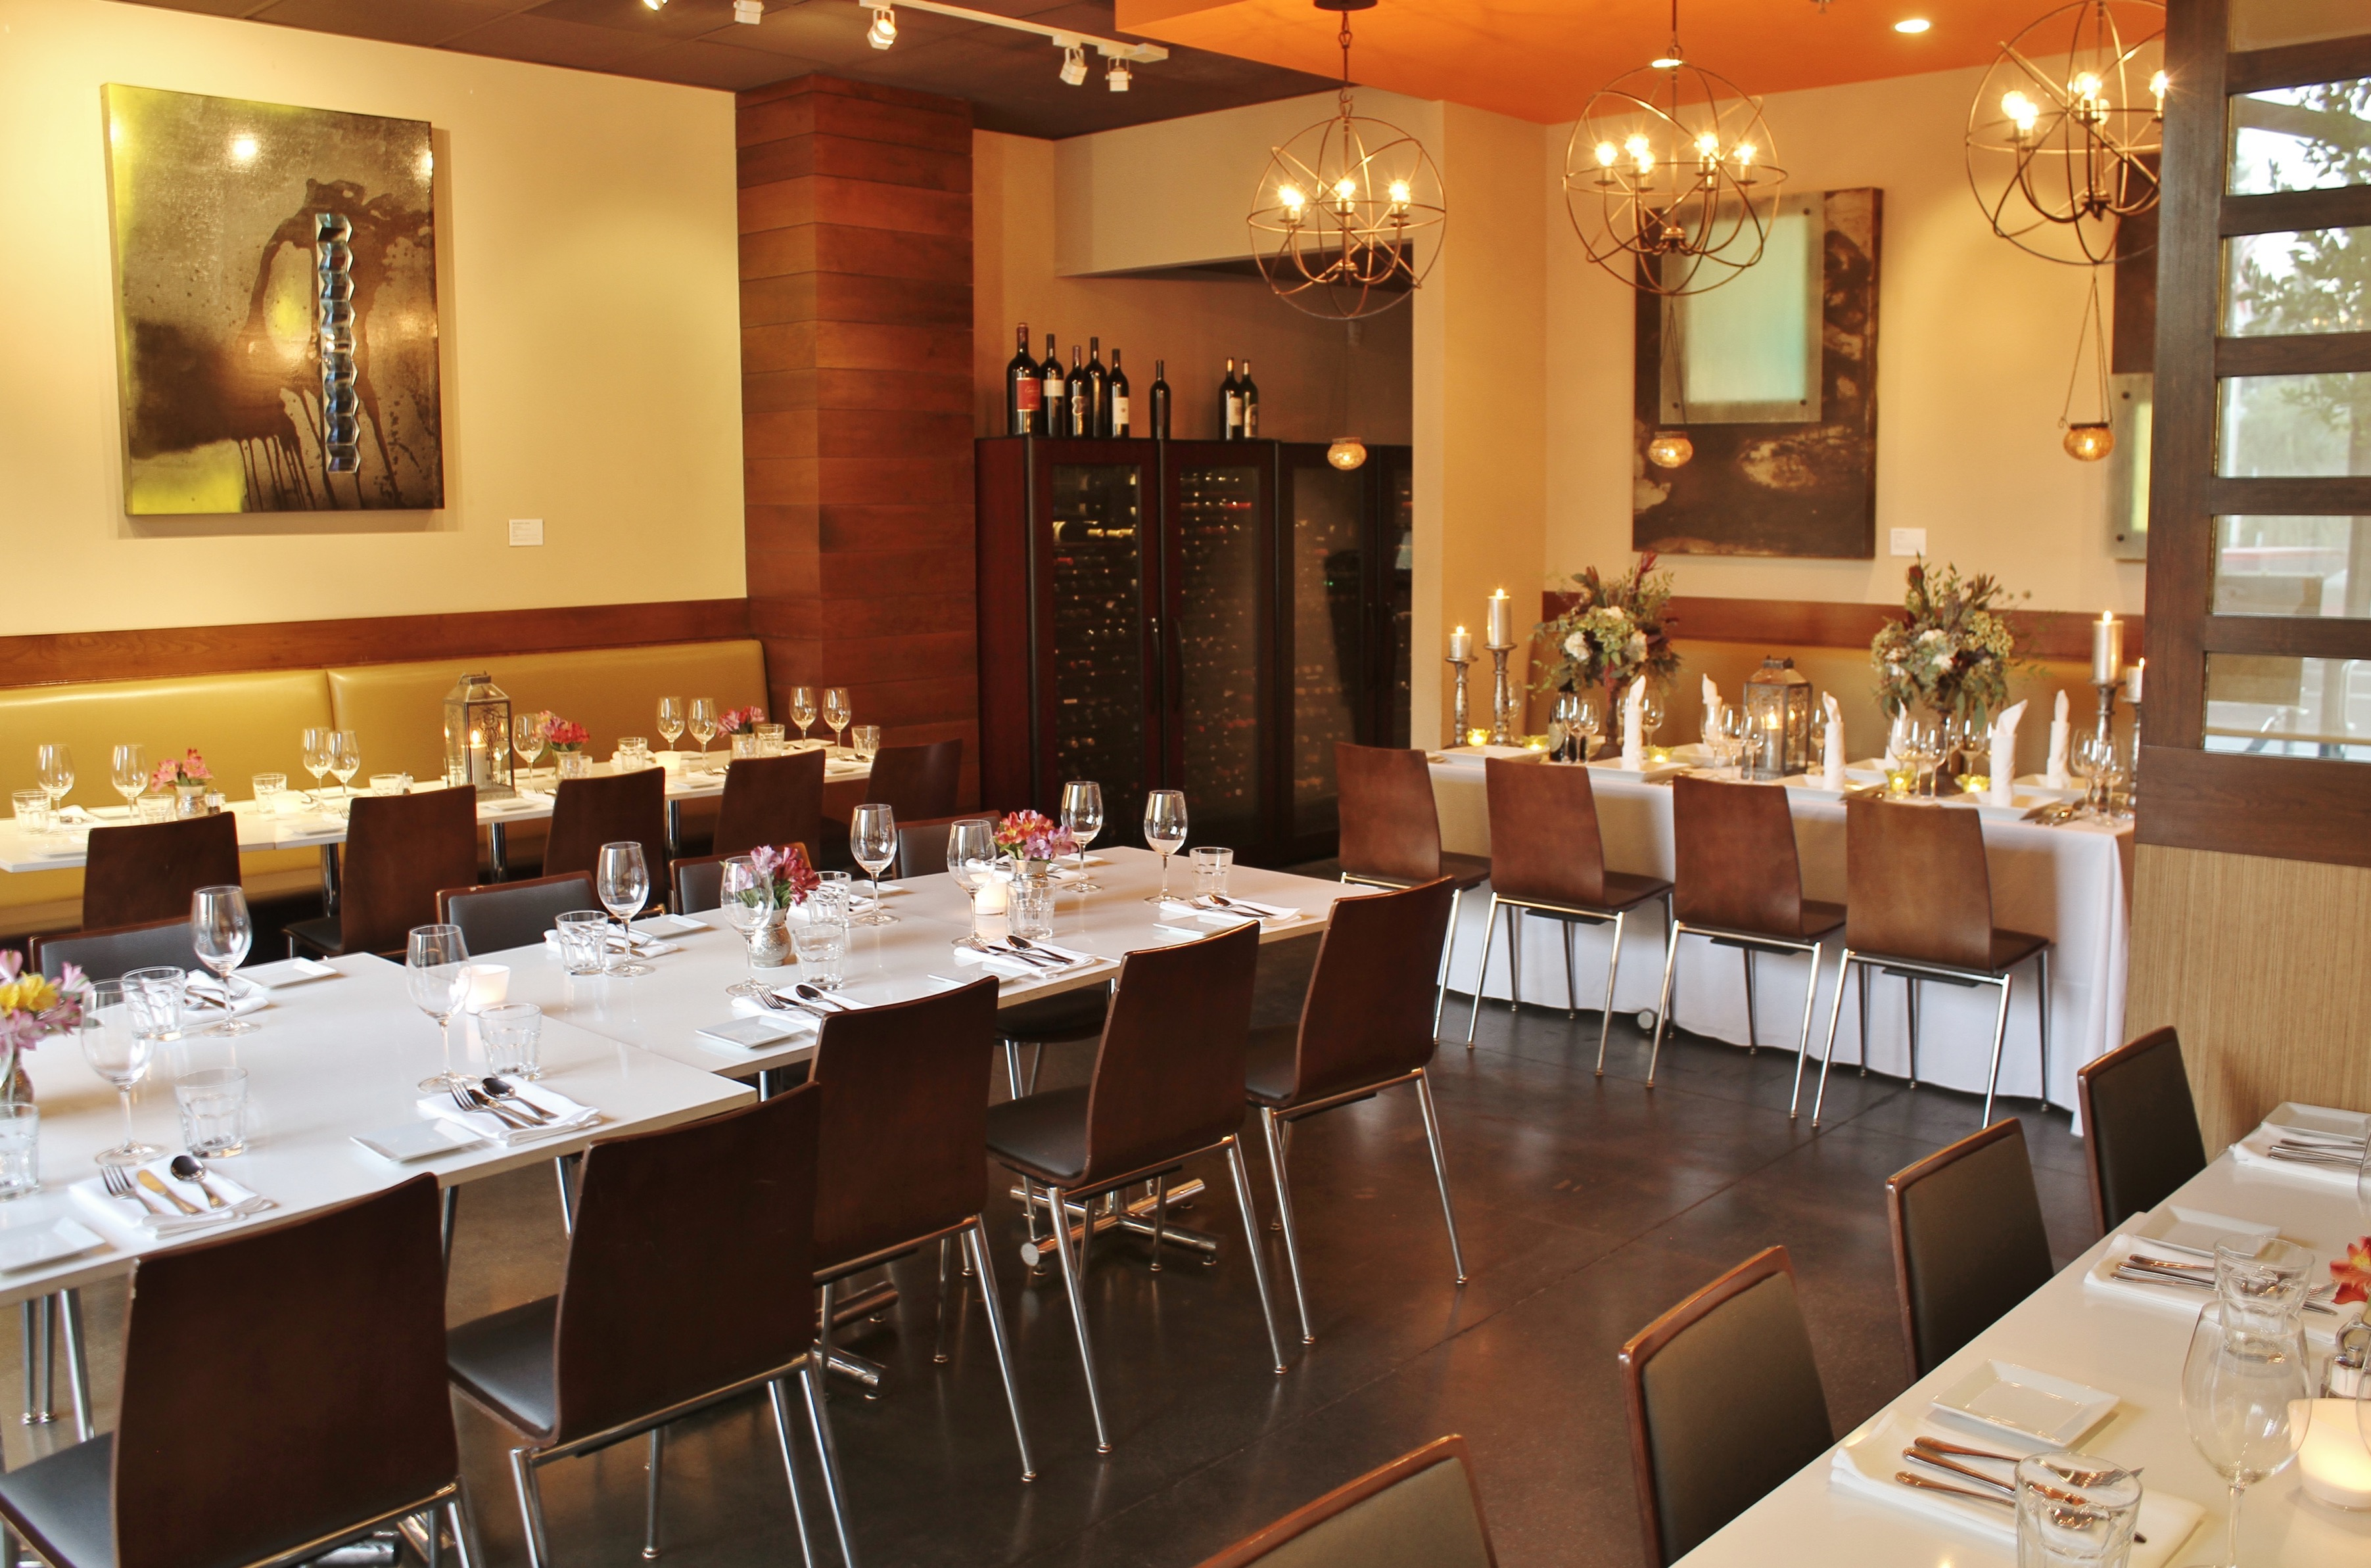 Private Dining Room event space at Tarla Mediterranean Grill in New York City, NYC, NY/NJ Area